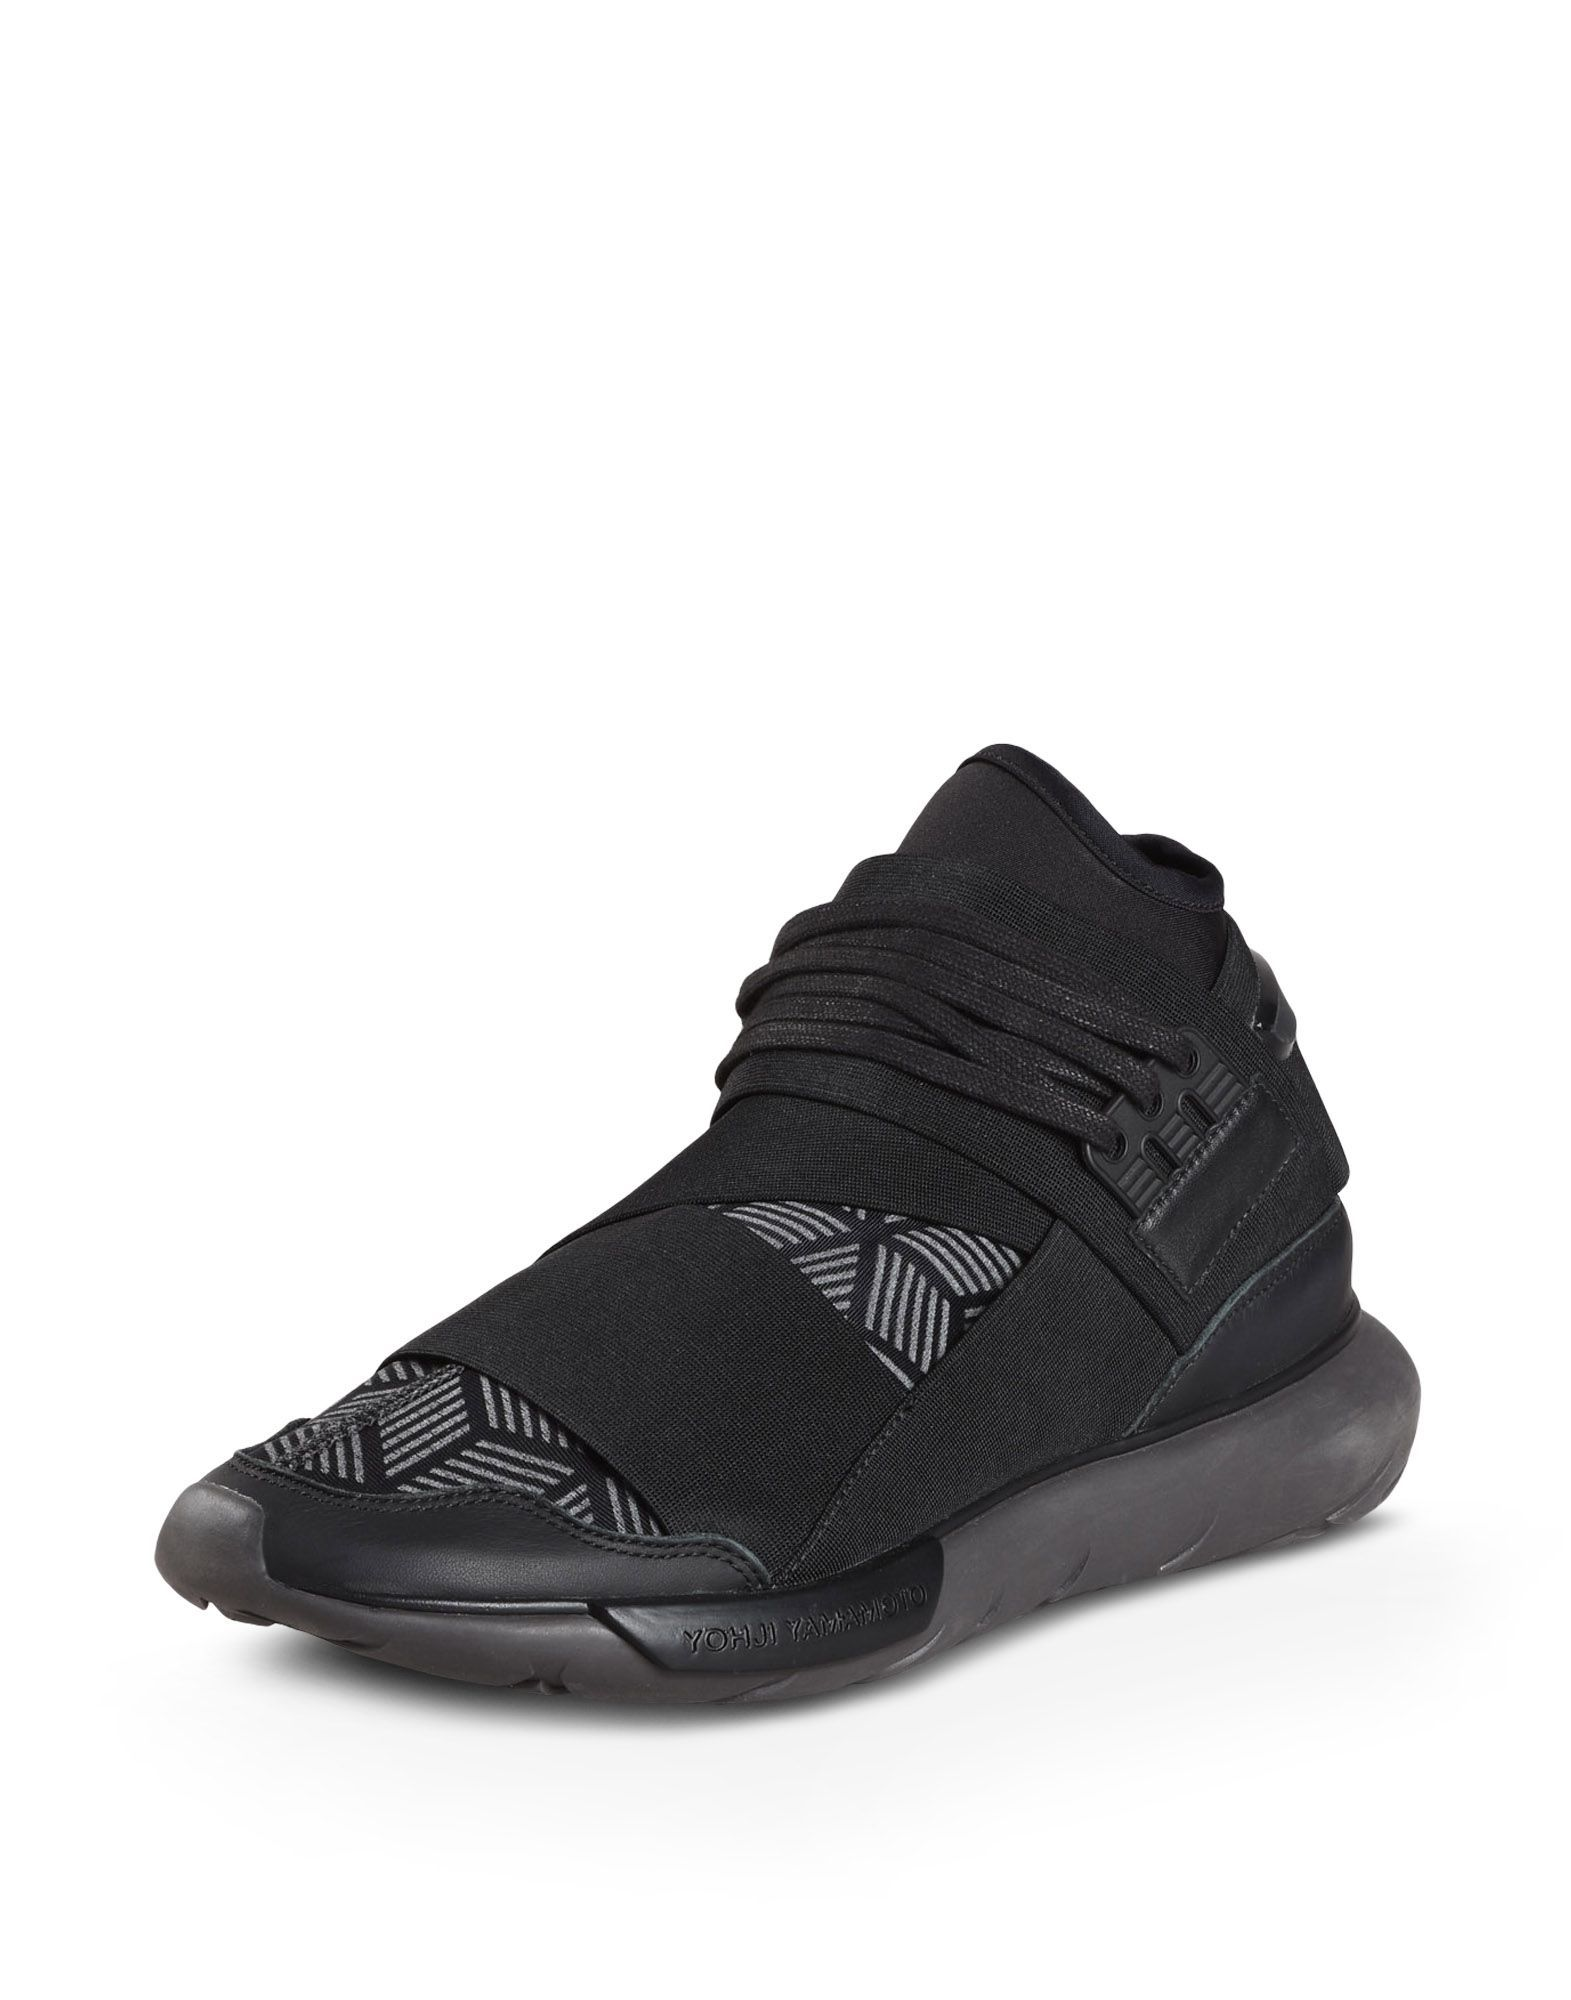 20bc2deae Check out the Y 3 QASA HIGH Sneakers for Men and order today on the official